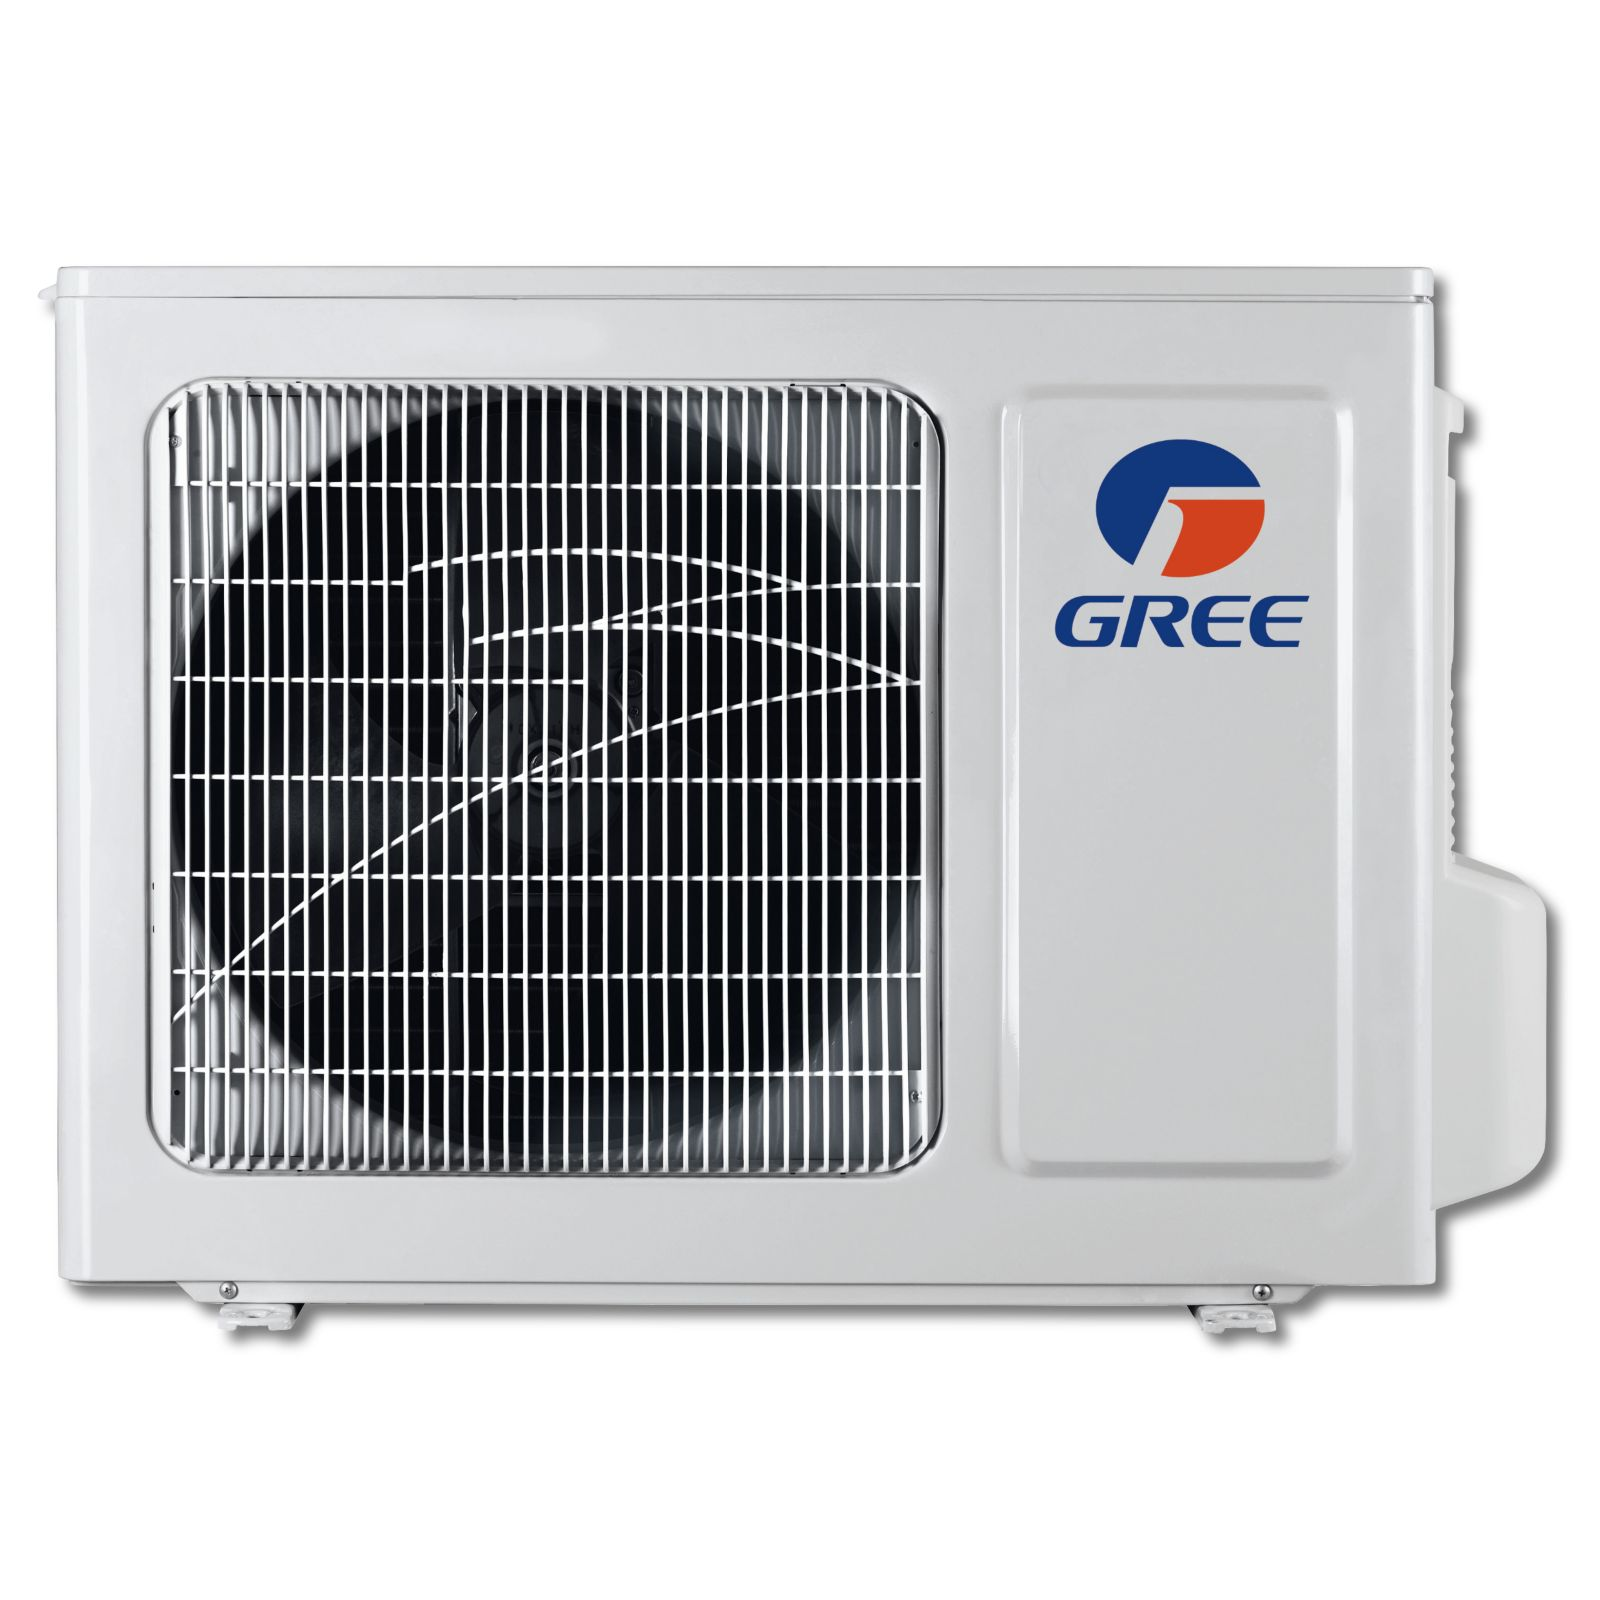 GREE VIR12HP115V1AO - Vireo Series 12,000 BTU Wall Mounted Inverter Heat Pump Outdoor Unit, 115V